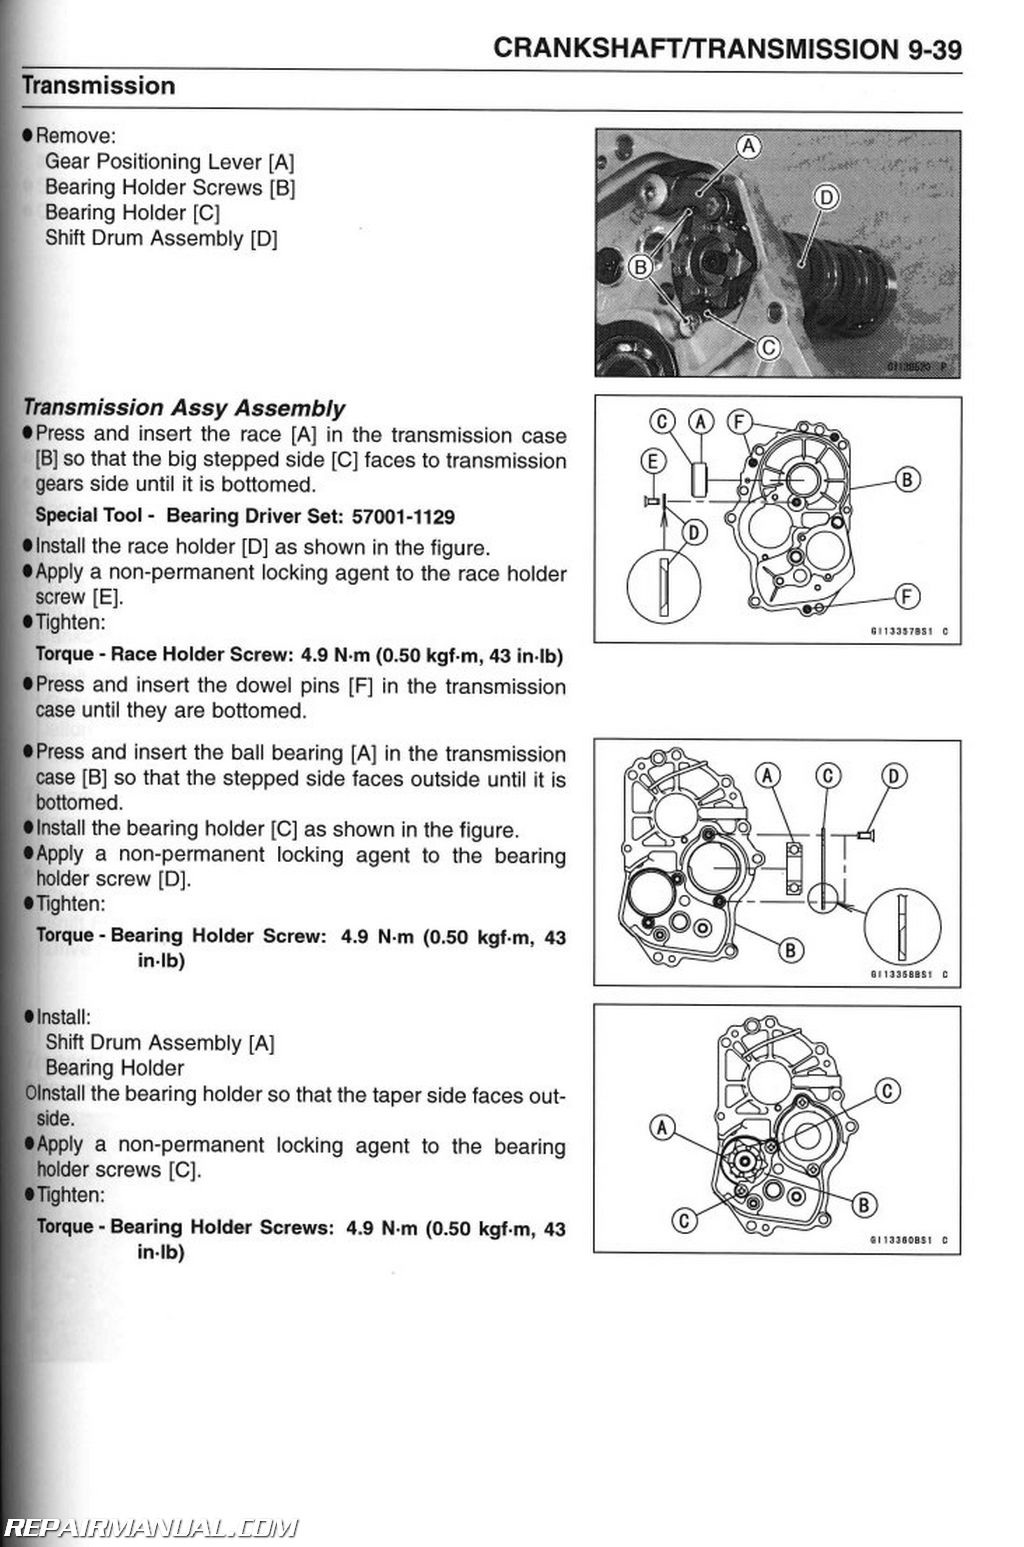 fuse box diagram 1995 zx 600r wiring diagram libraries fuse box diagram 1995 zx 600r wiring library2007 2008 kawasaki ninja zx 6r zx600p motorcycle service